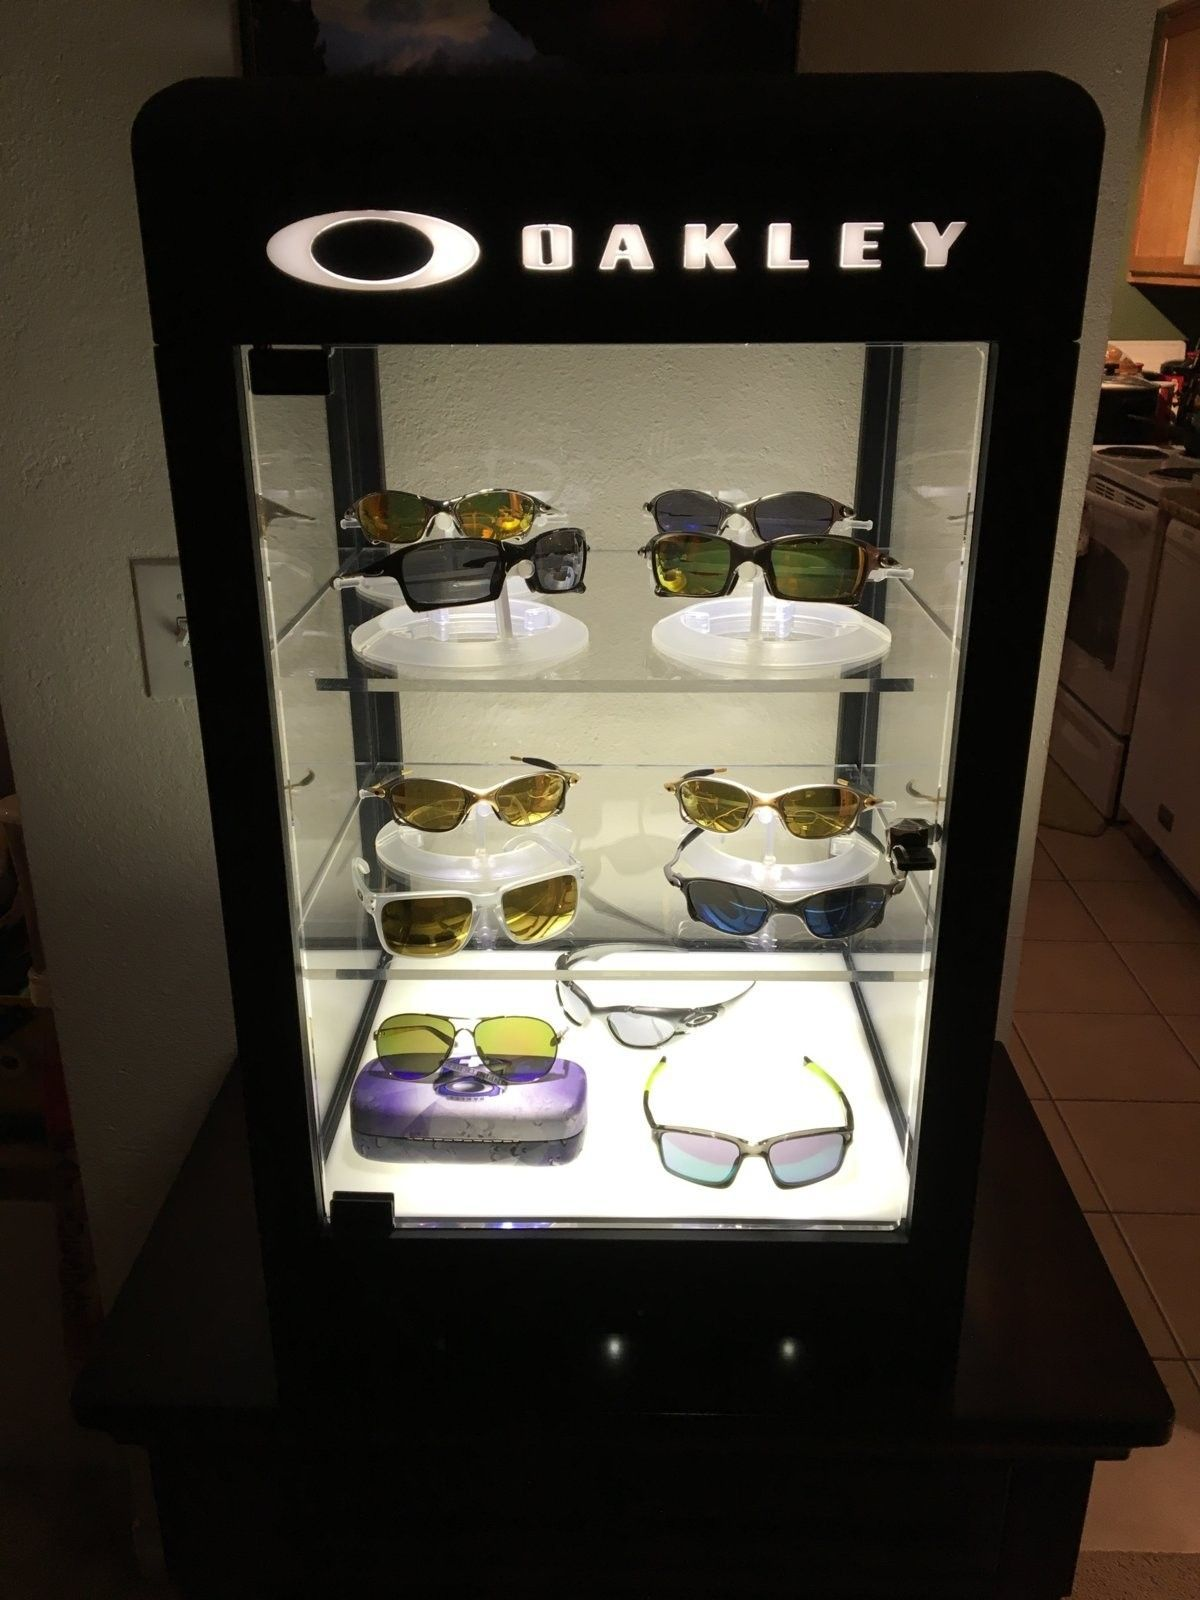 3.0 Oakley countertop display bulb question - image.jpeg